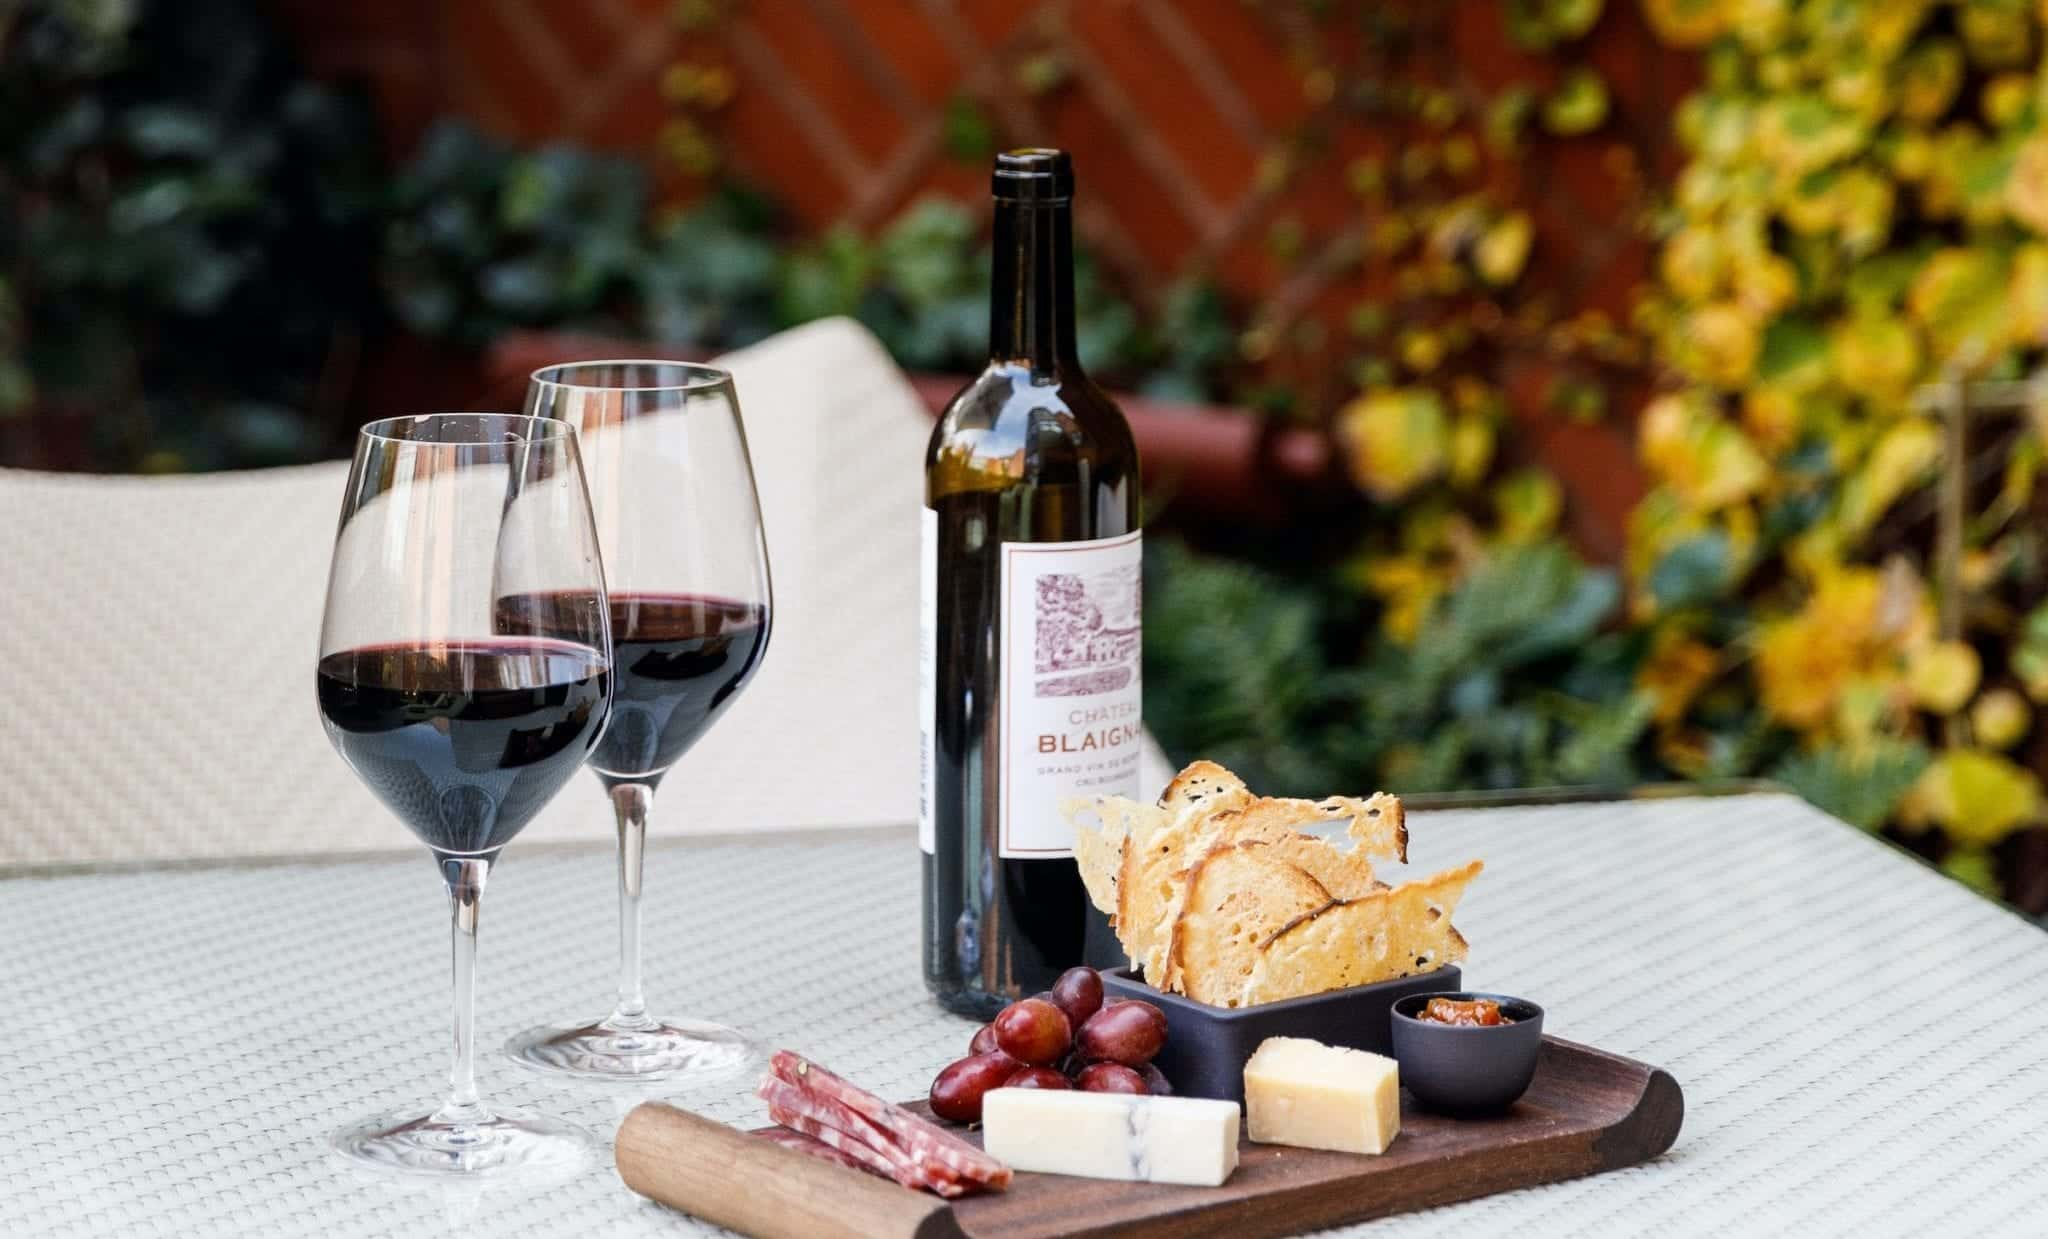 Wine and cheese on outdoor table.